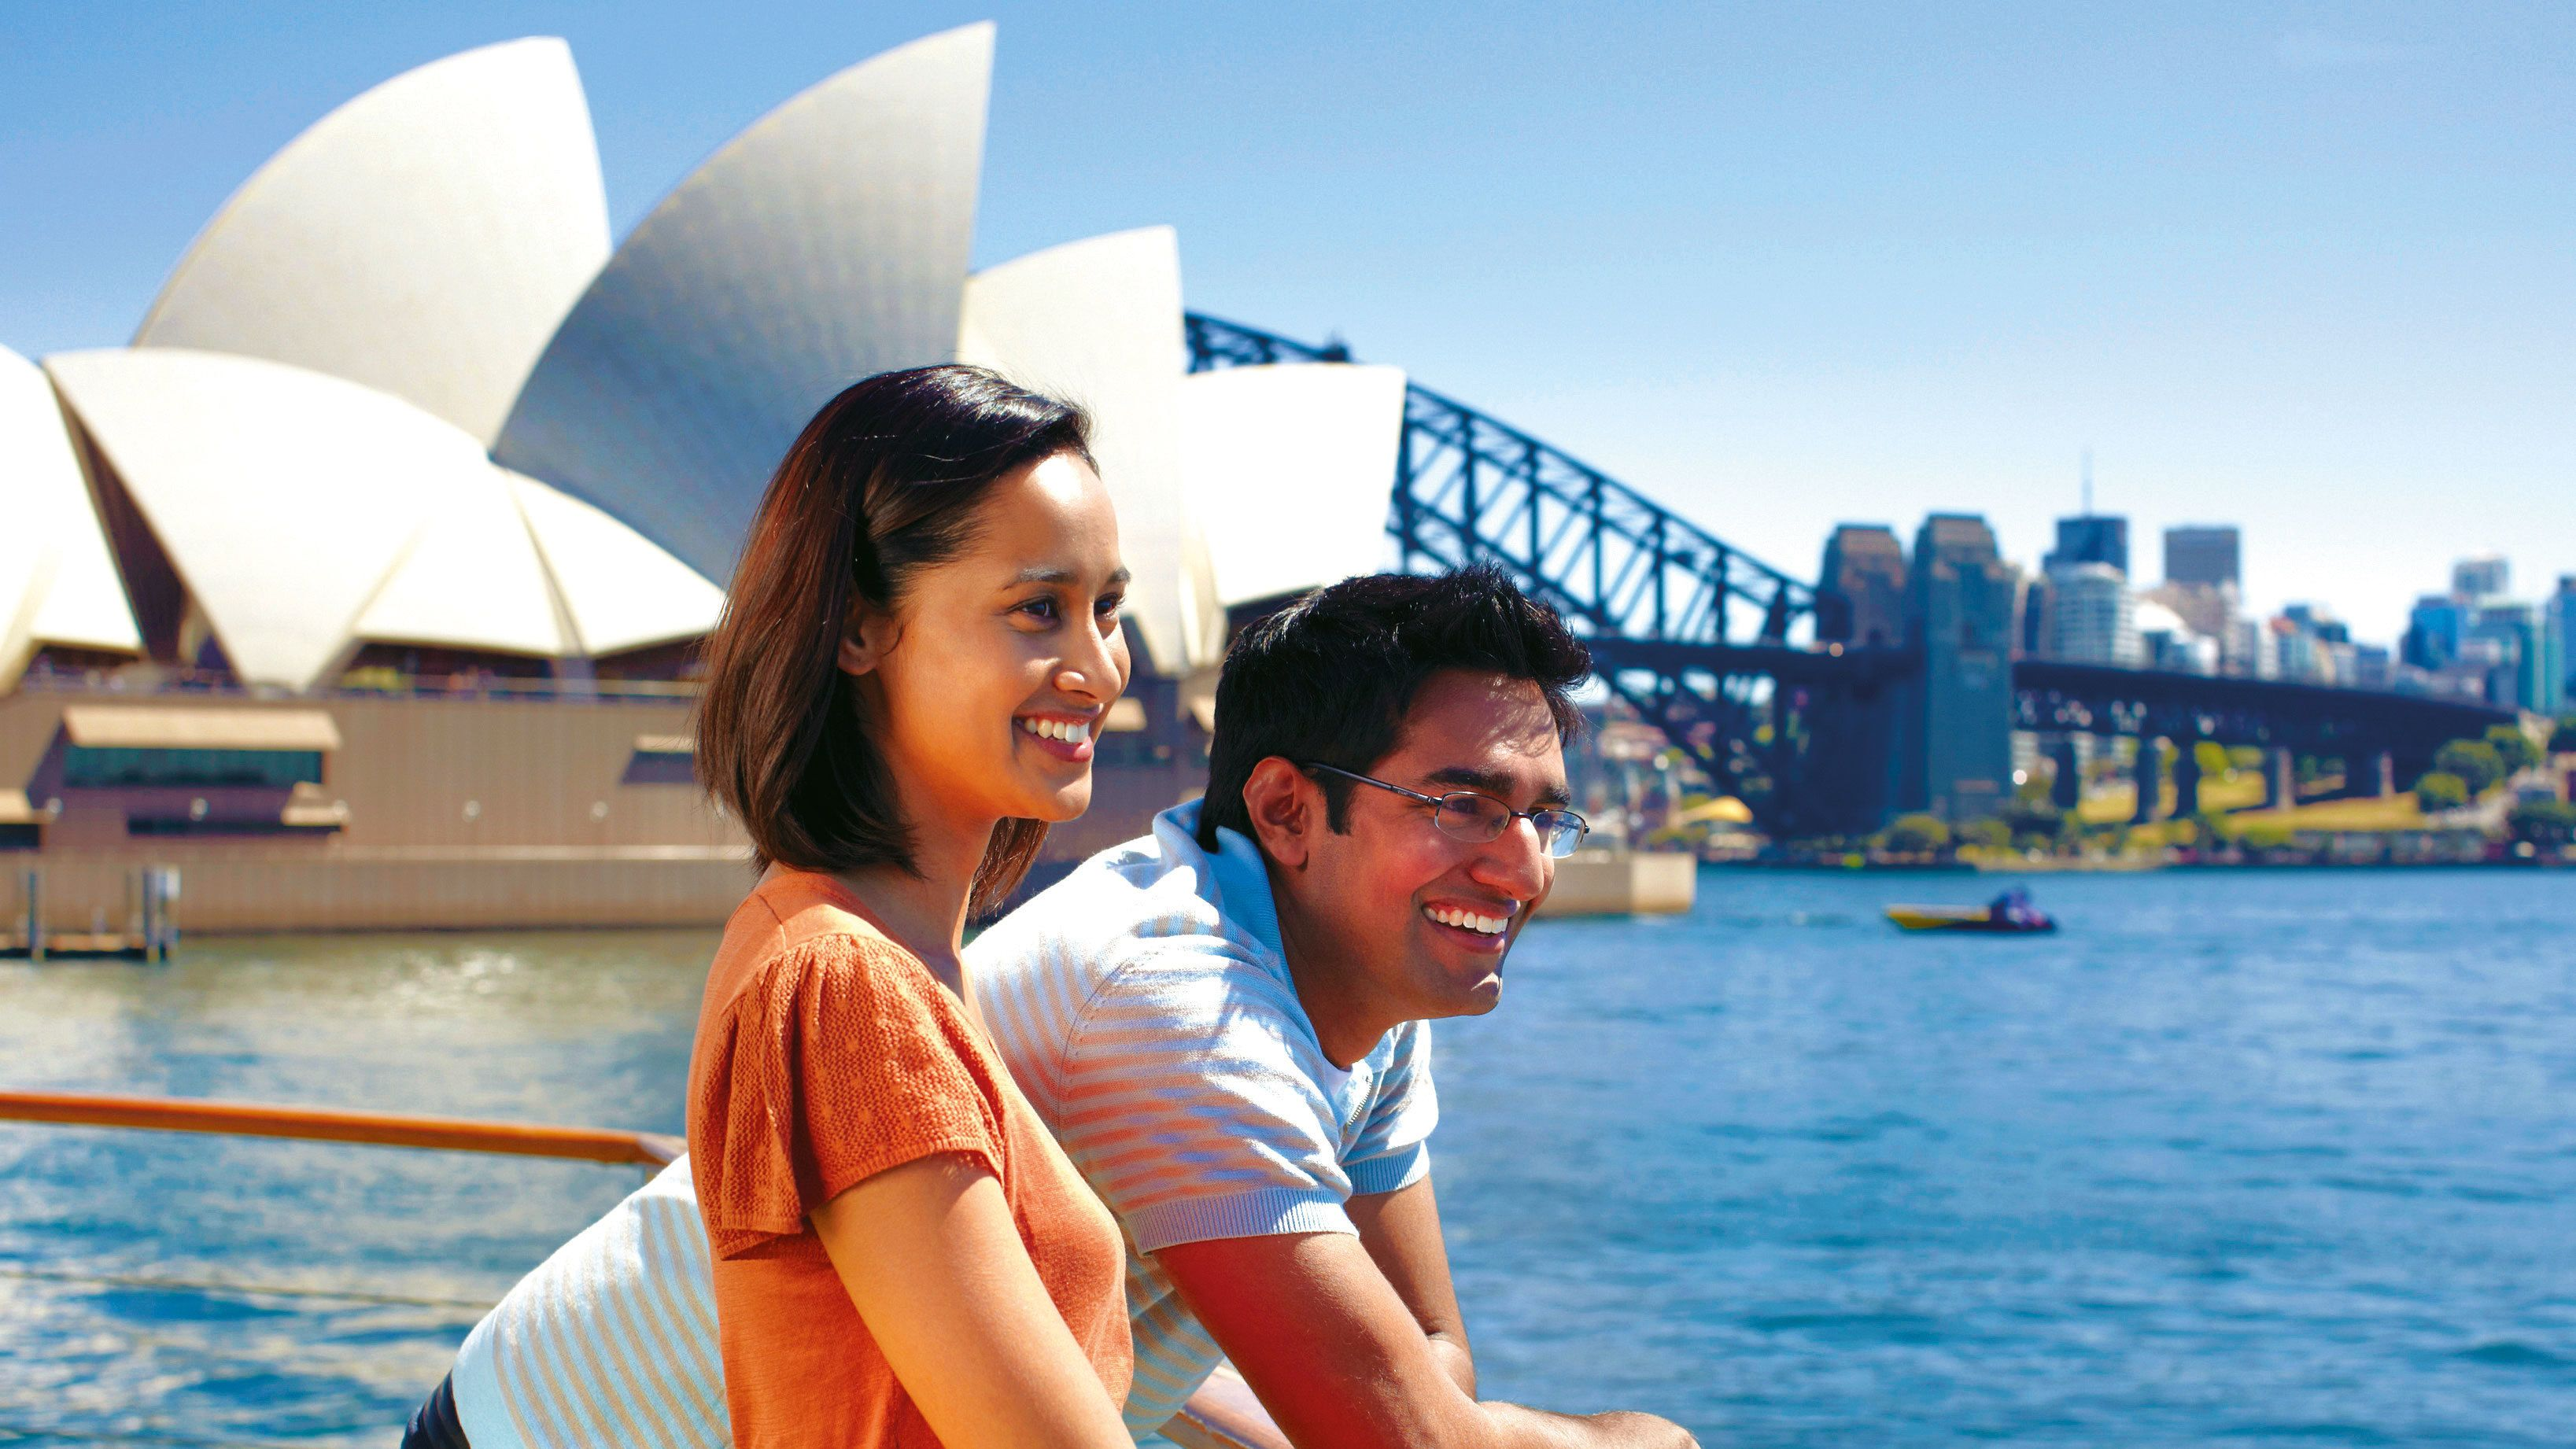 Couple smiling on the Sydney Harbour with the Sydney Opera House in the background on a sunny day